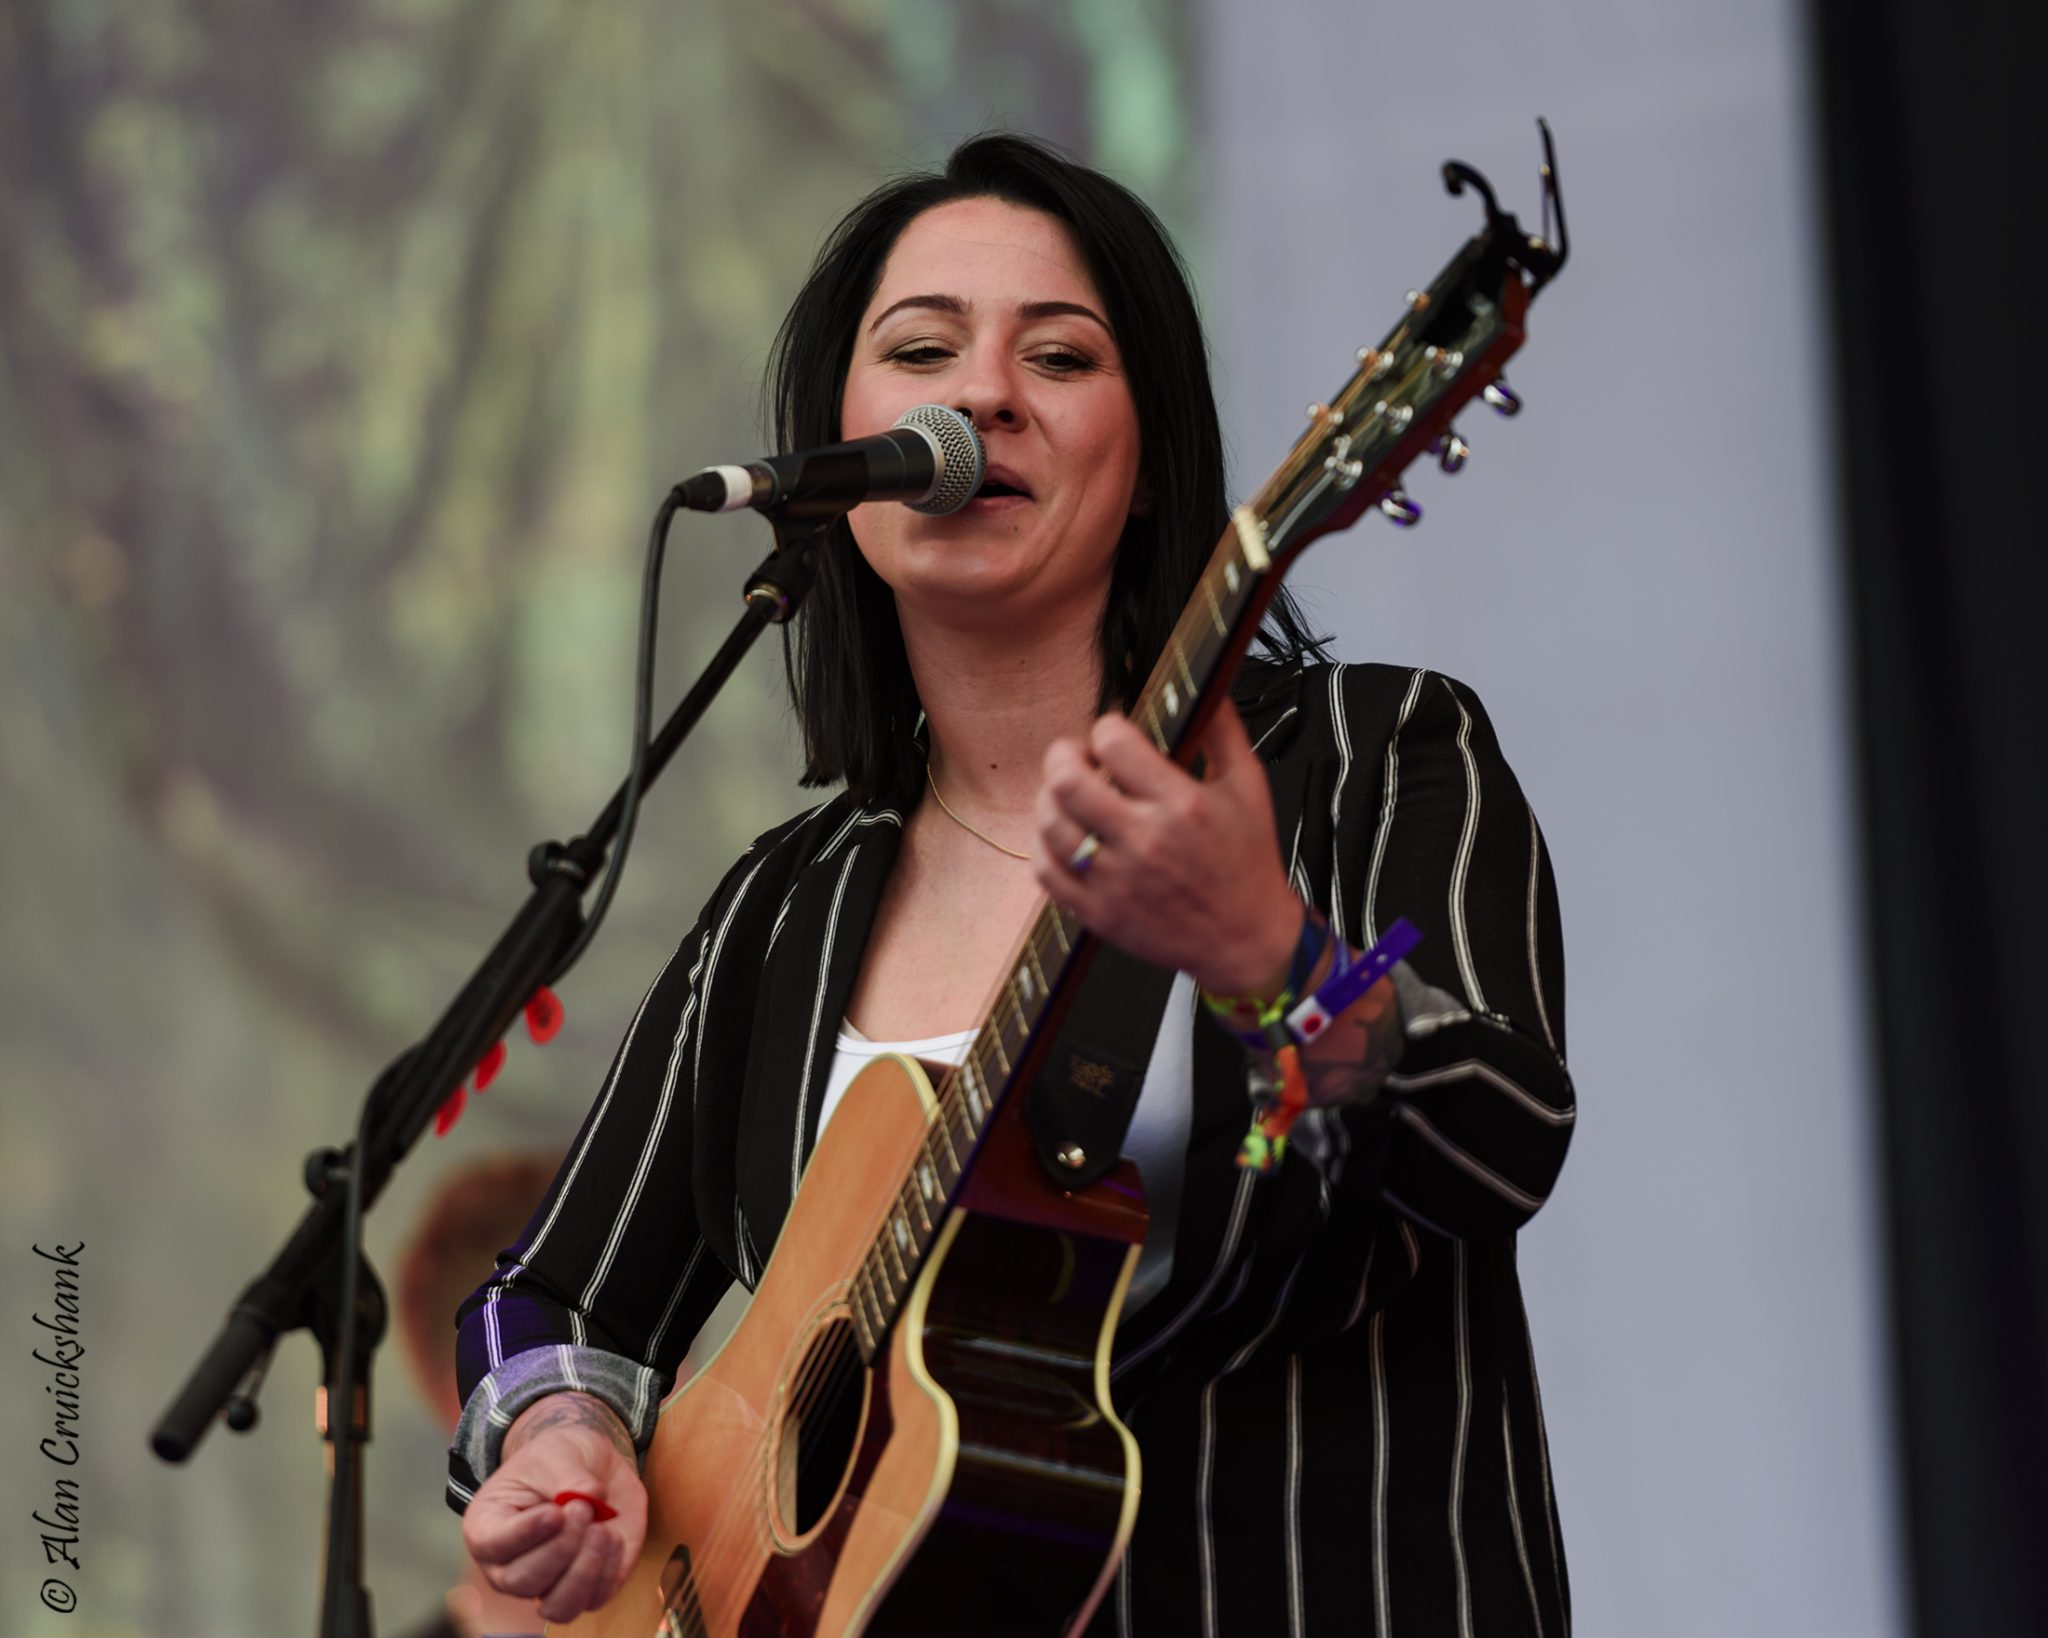 Vy3C8 - Lucy Spraggan Friday Belladrum 2018 - IMAGES